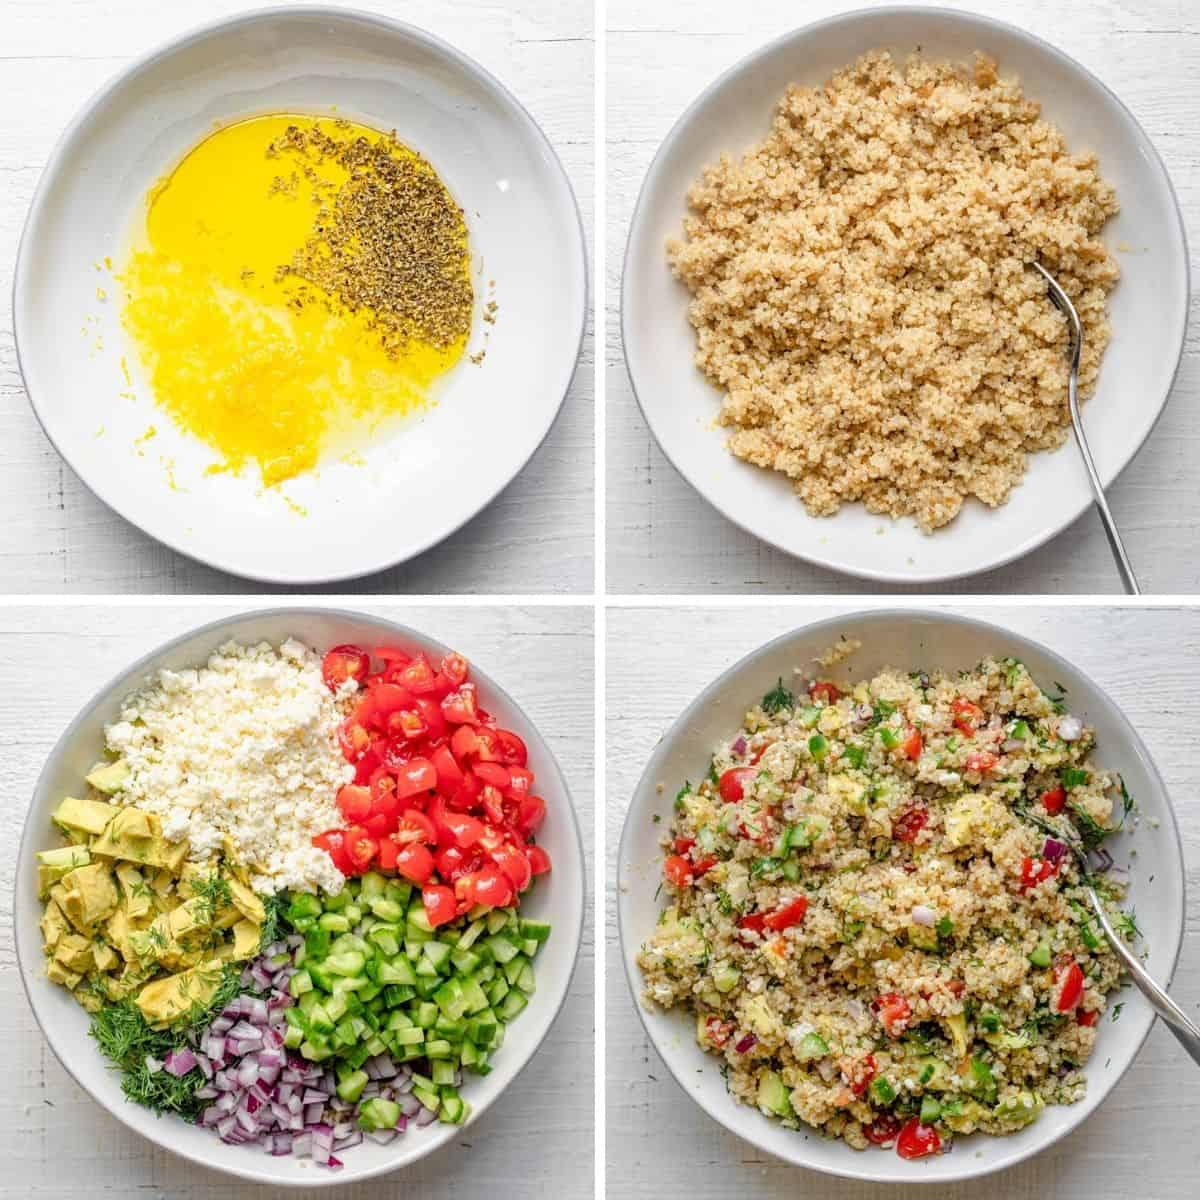 4 image collage to show how to assemble the salad